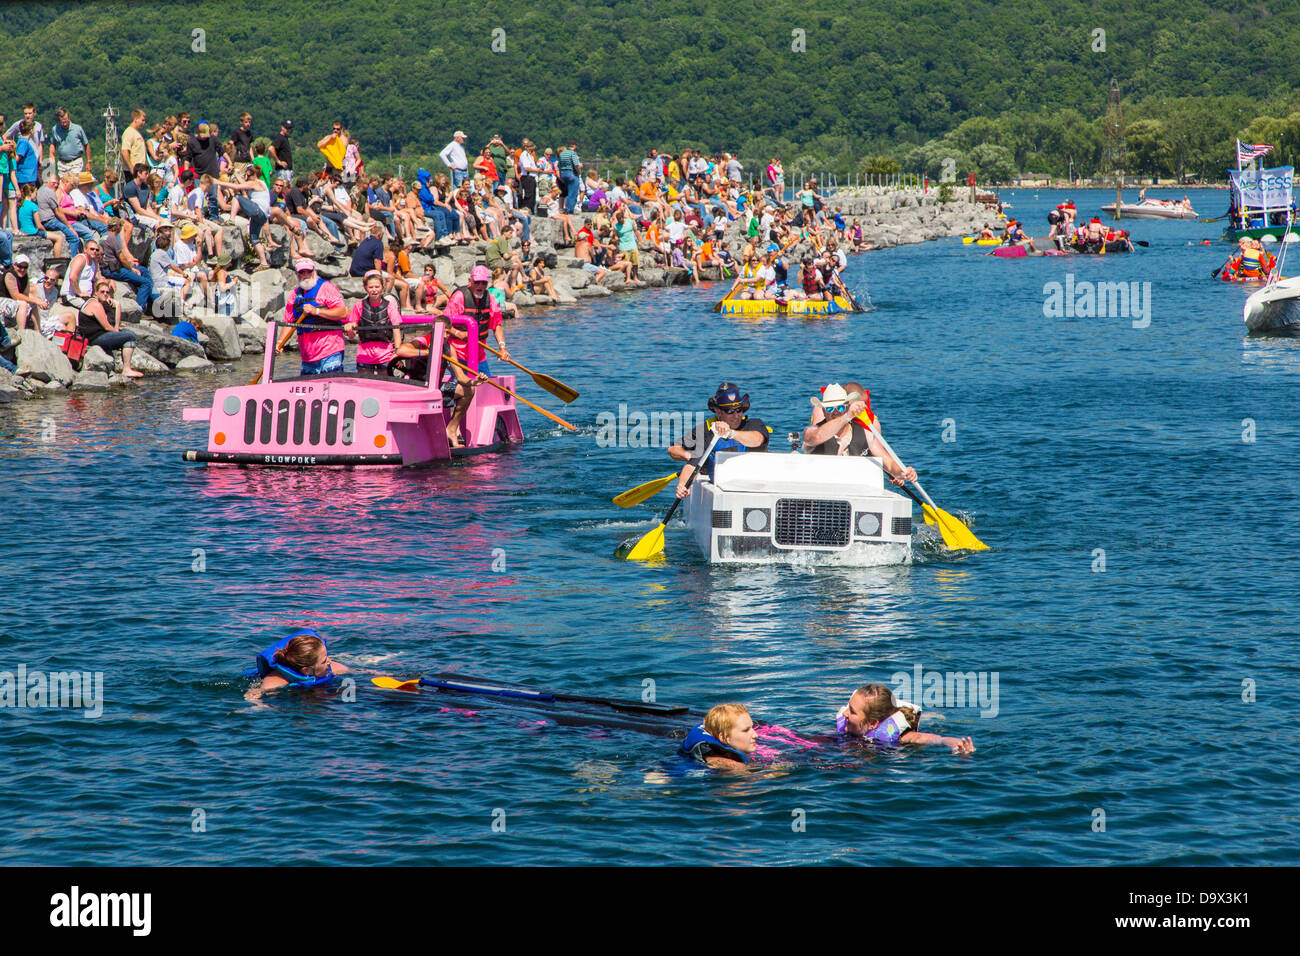 20th Annual Watkins Glen Waterfront Festival & Cardboard ...